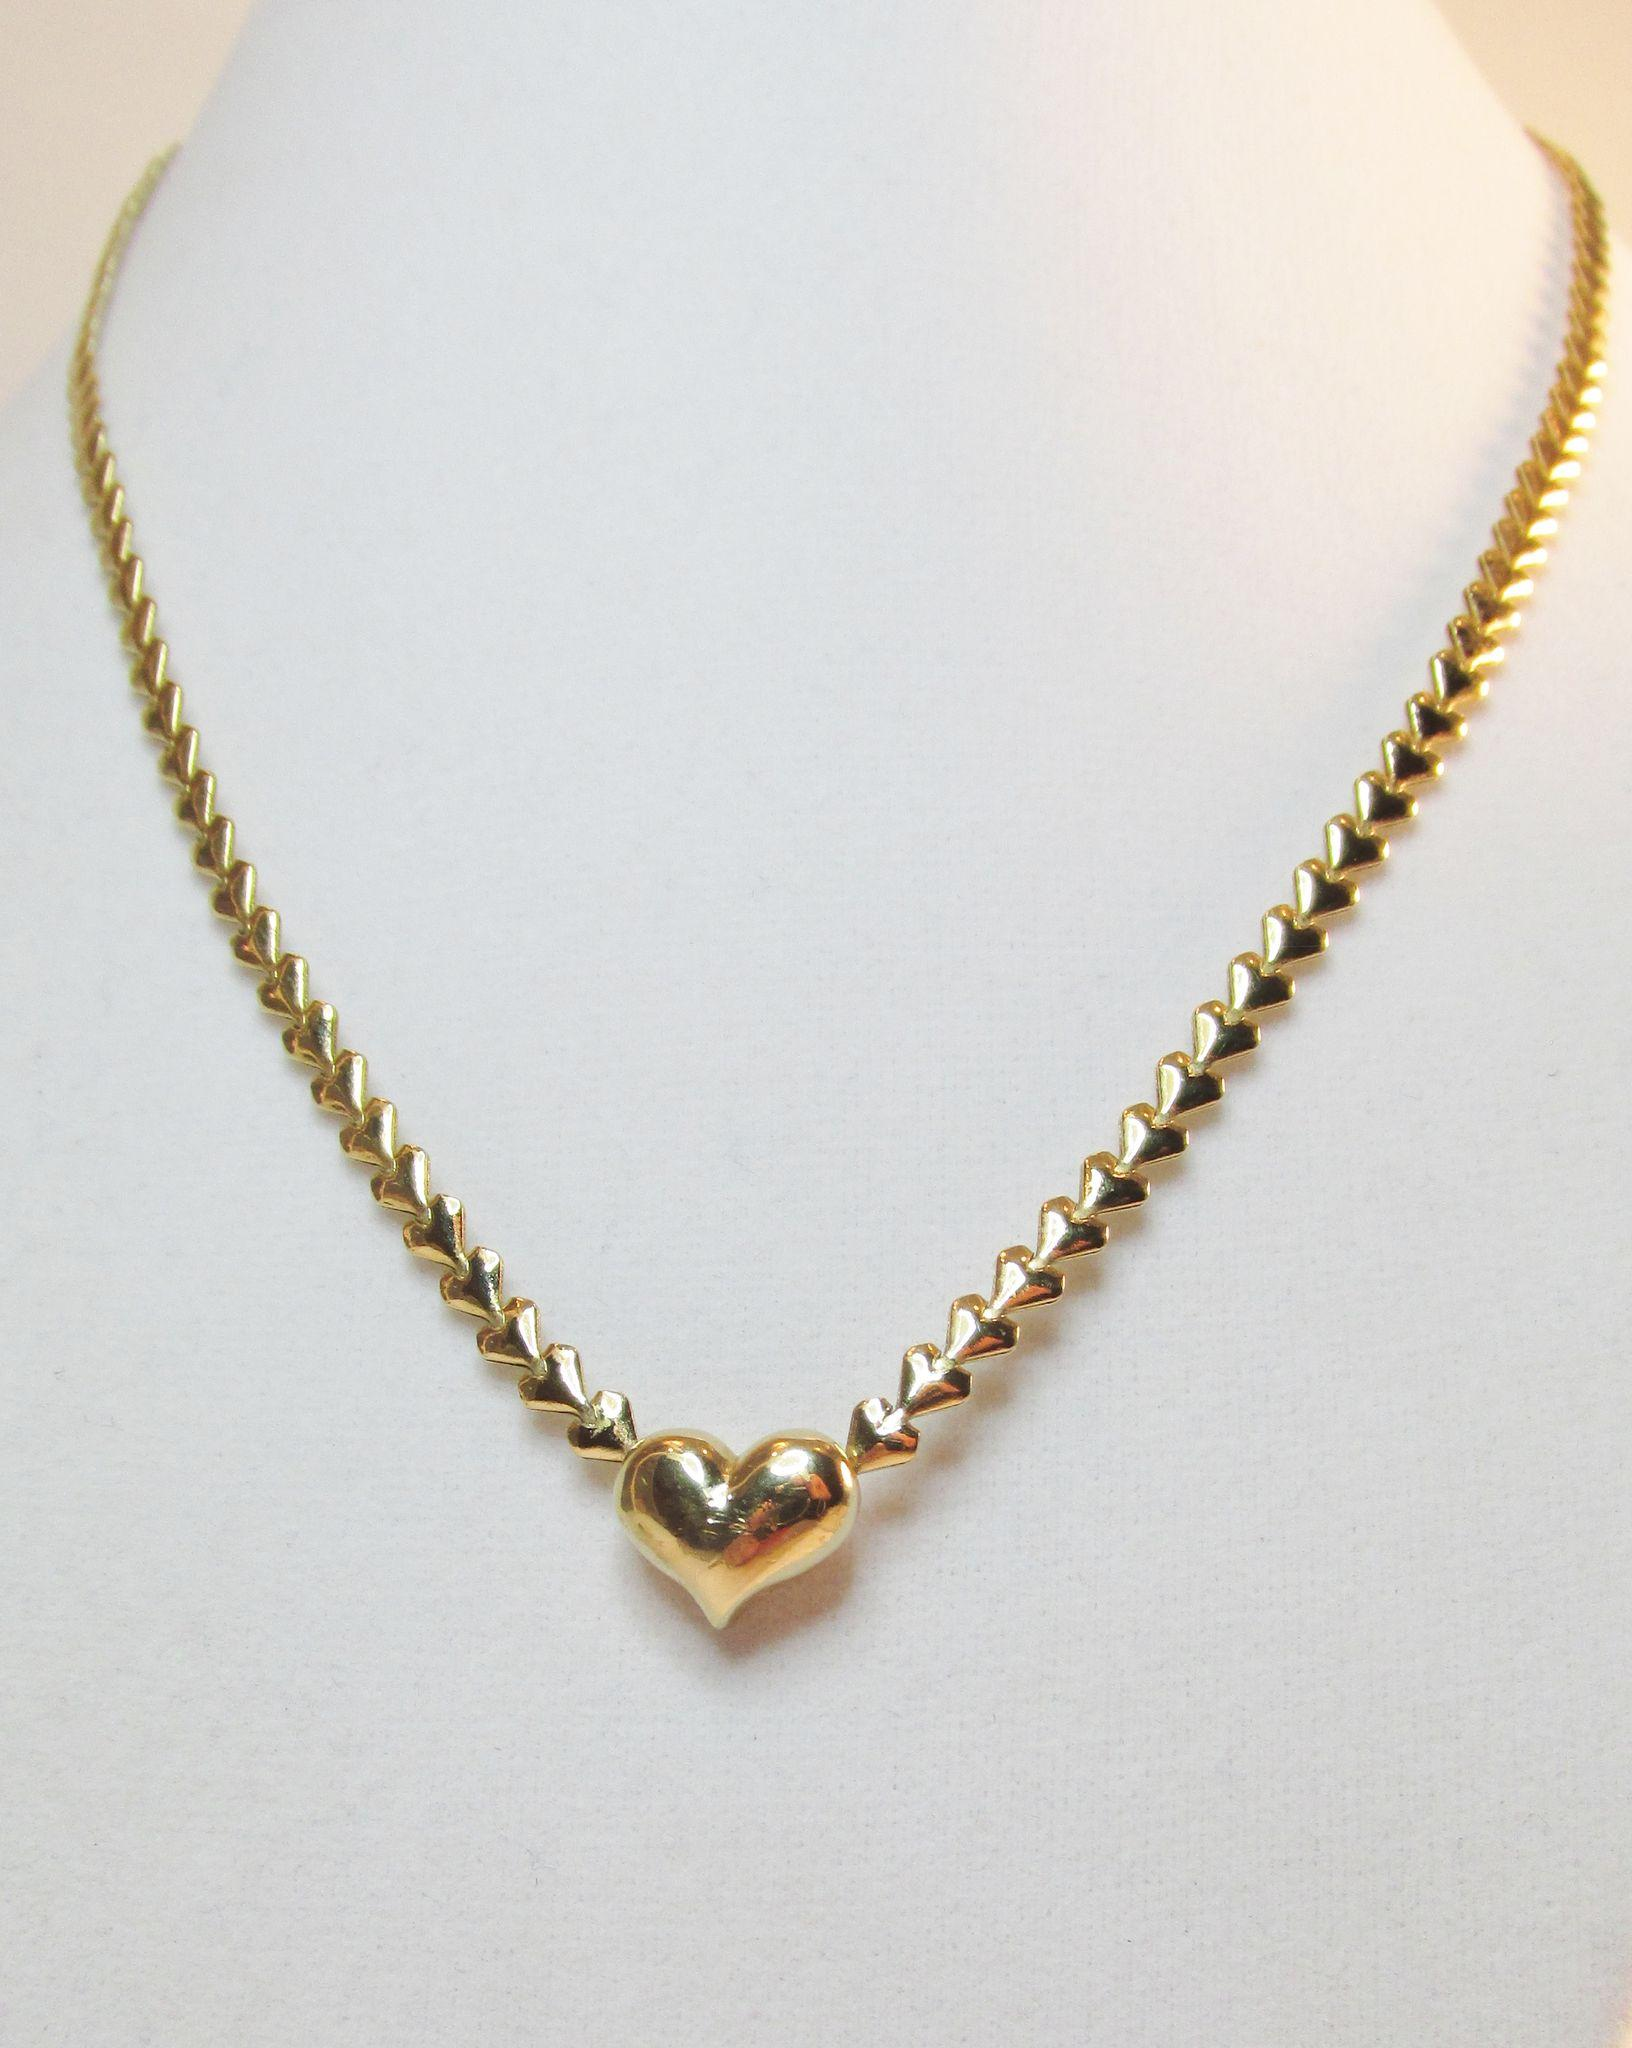 Avon Gold Tone Heart Necklace Vintage from ninas on Ruby Lane